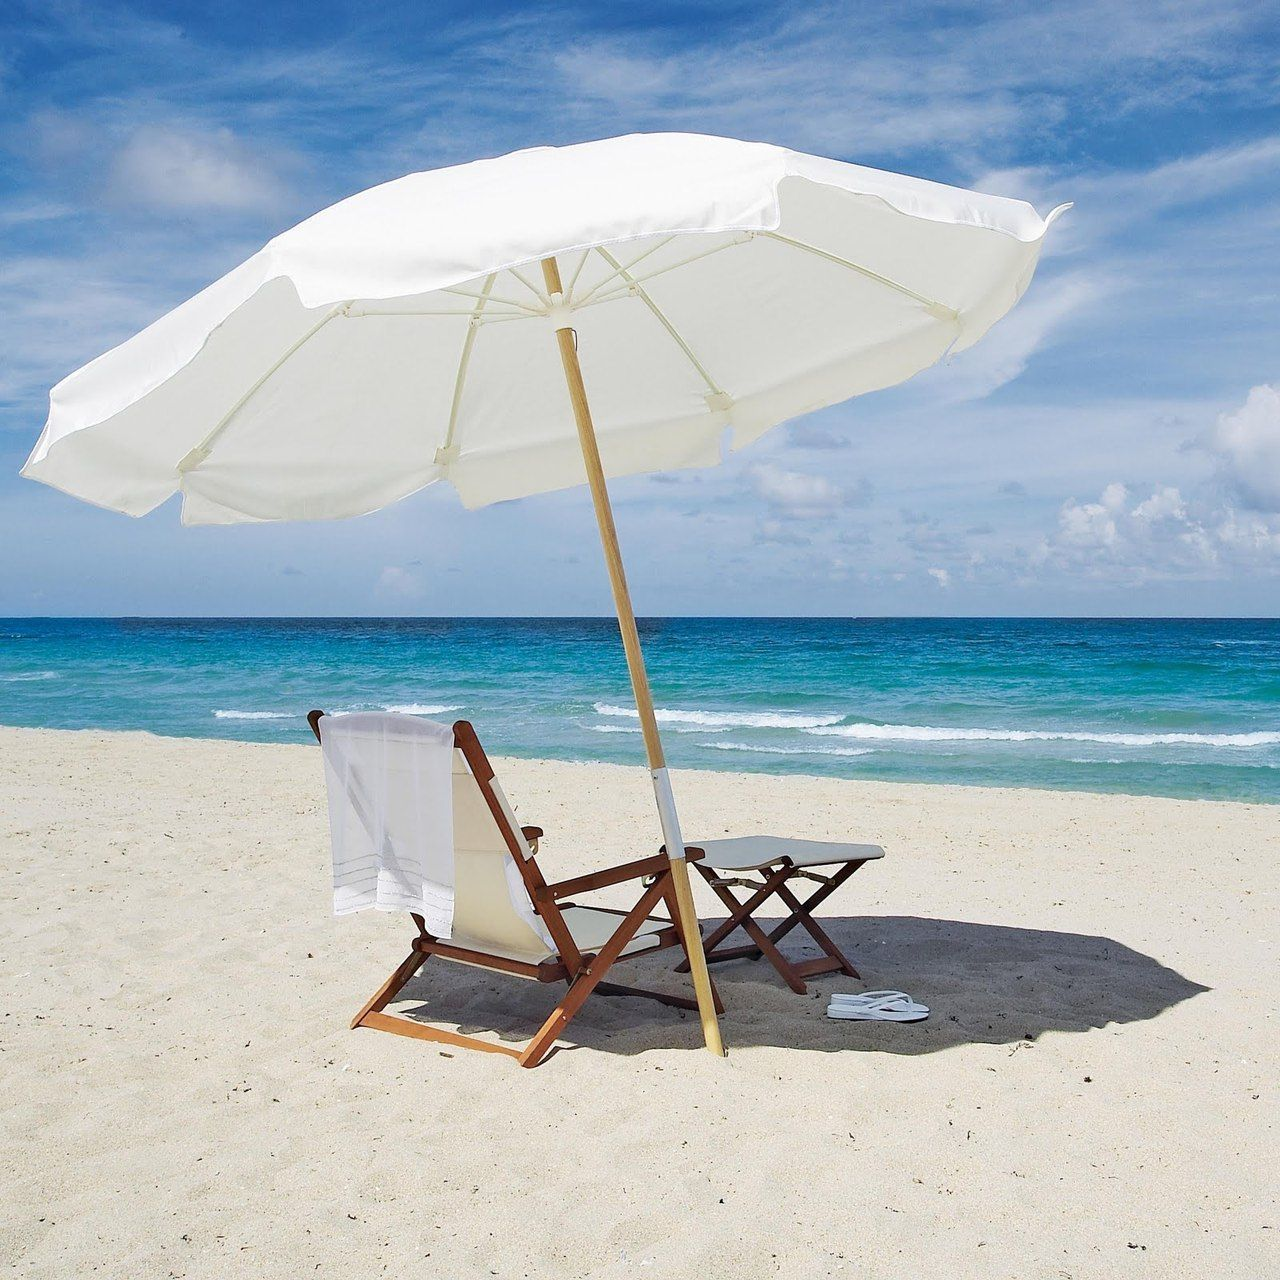 Beach Chairs With Umbrella Pin By Kristen Nichols On Summer Beach Beach Umbrella Beach Chairs